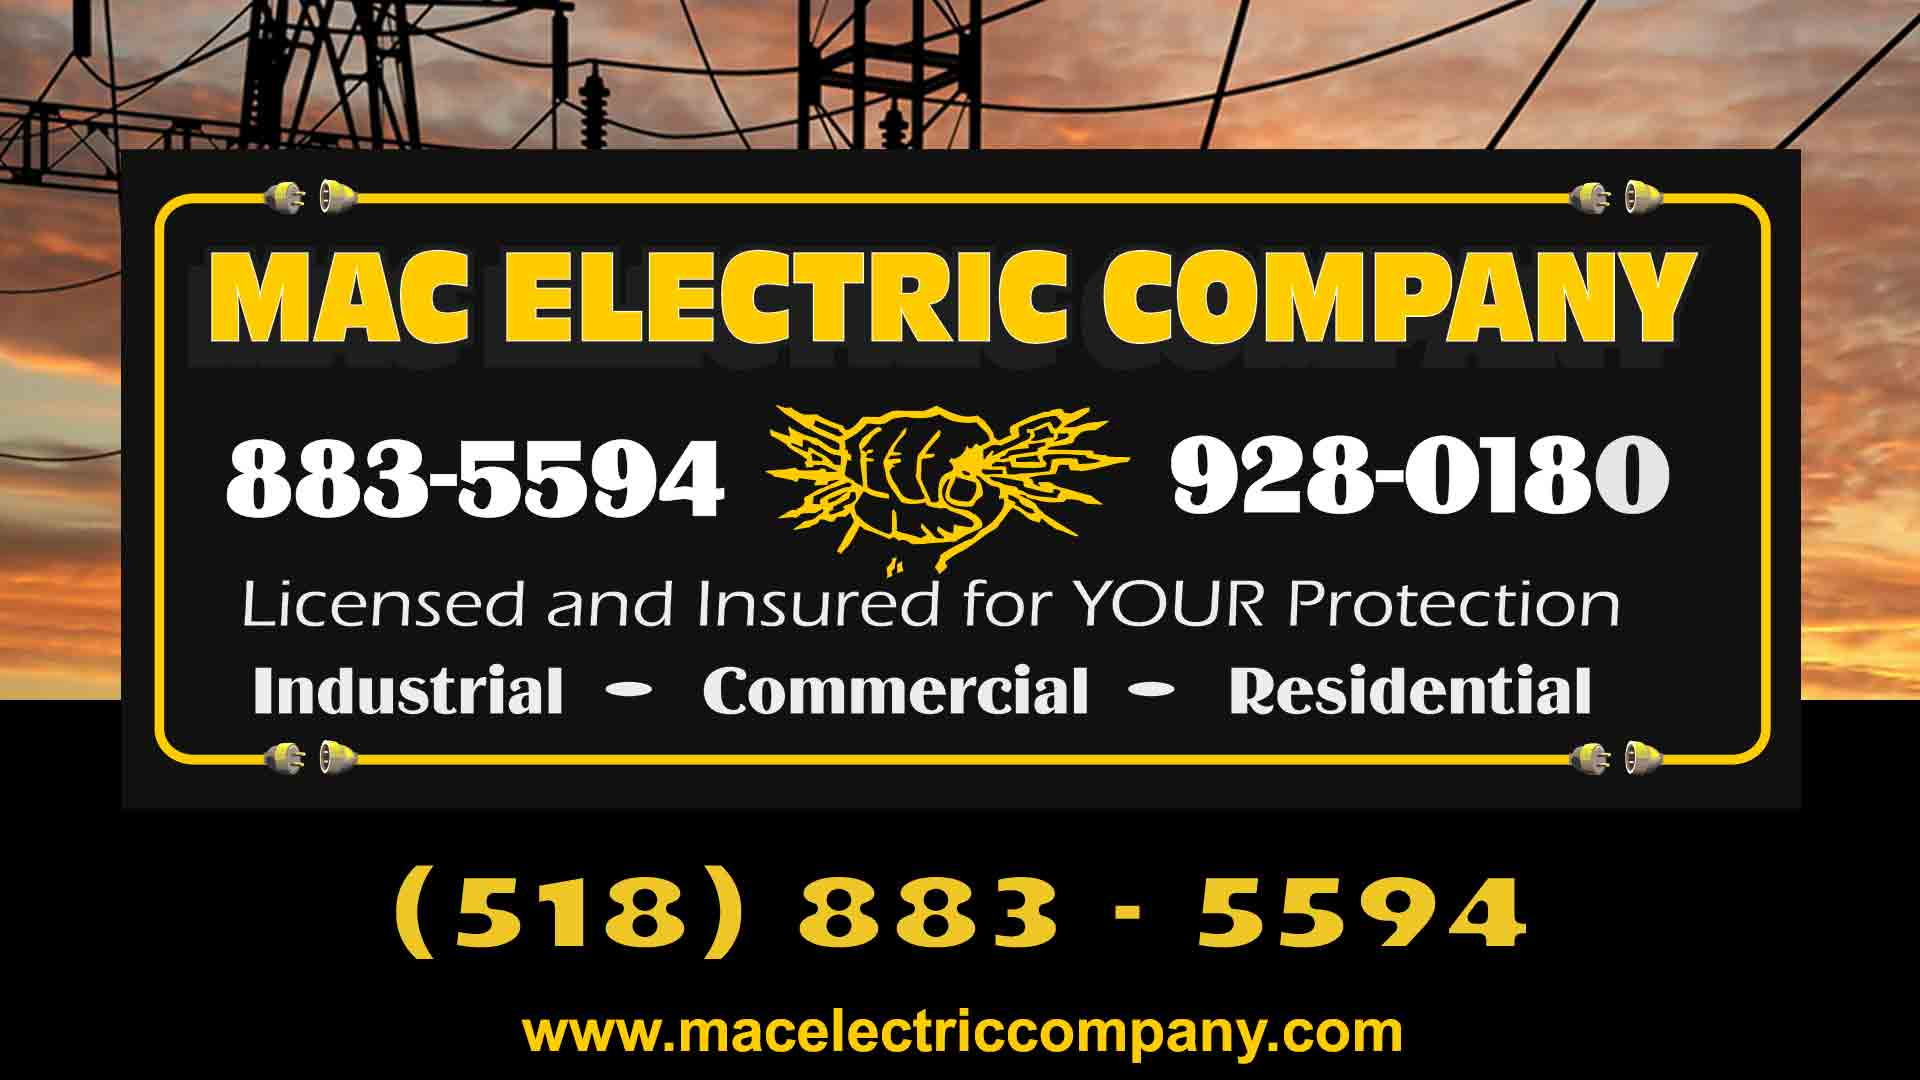 Mac Electric Company Residential Commercial Industrial Wiring Estimation Electricians 518 883 5594